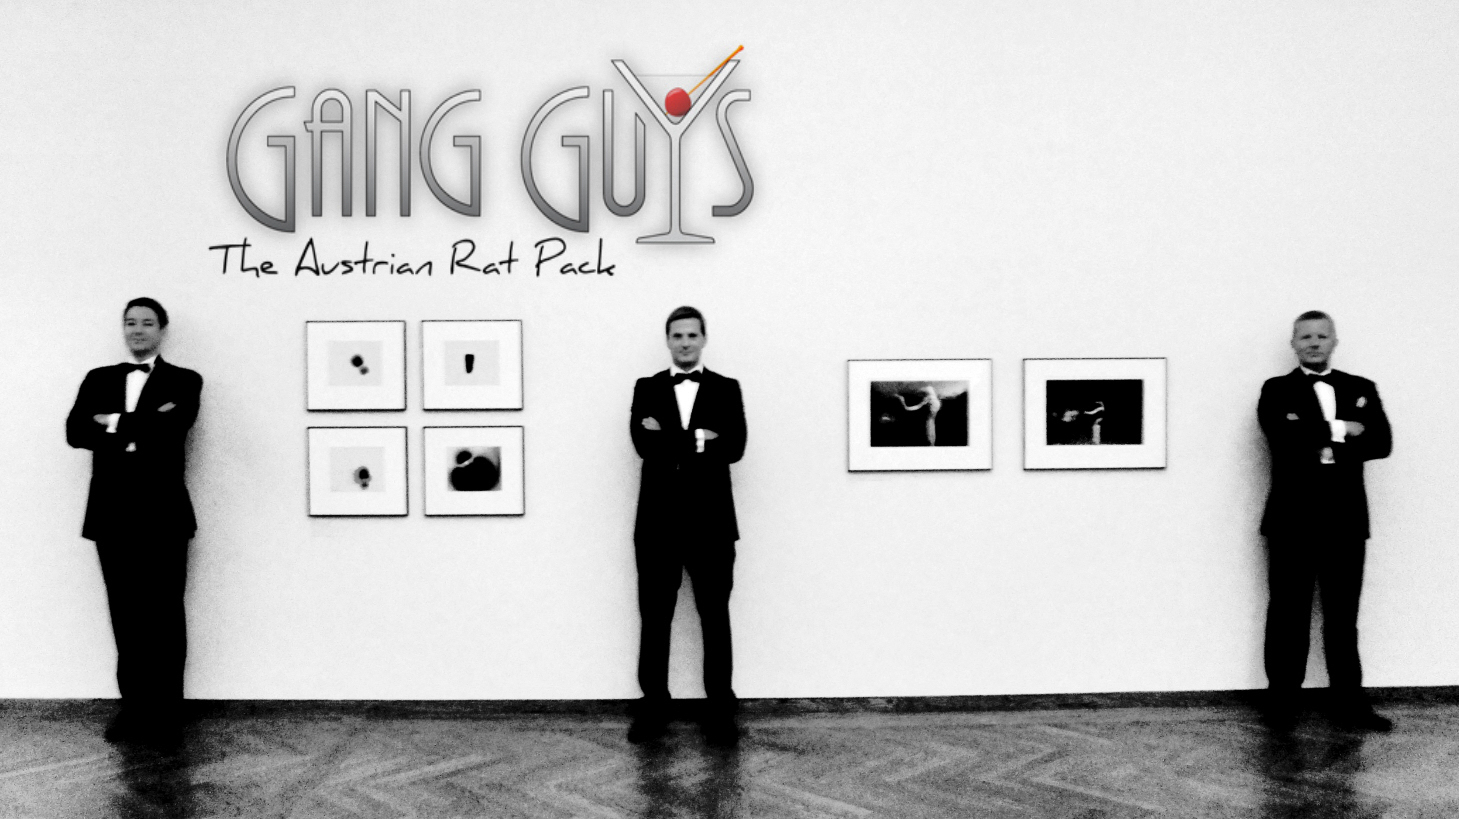 The Gang Guys | The Austrian Ratpack